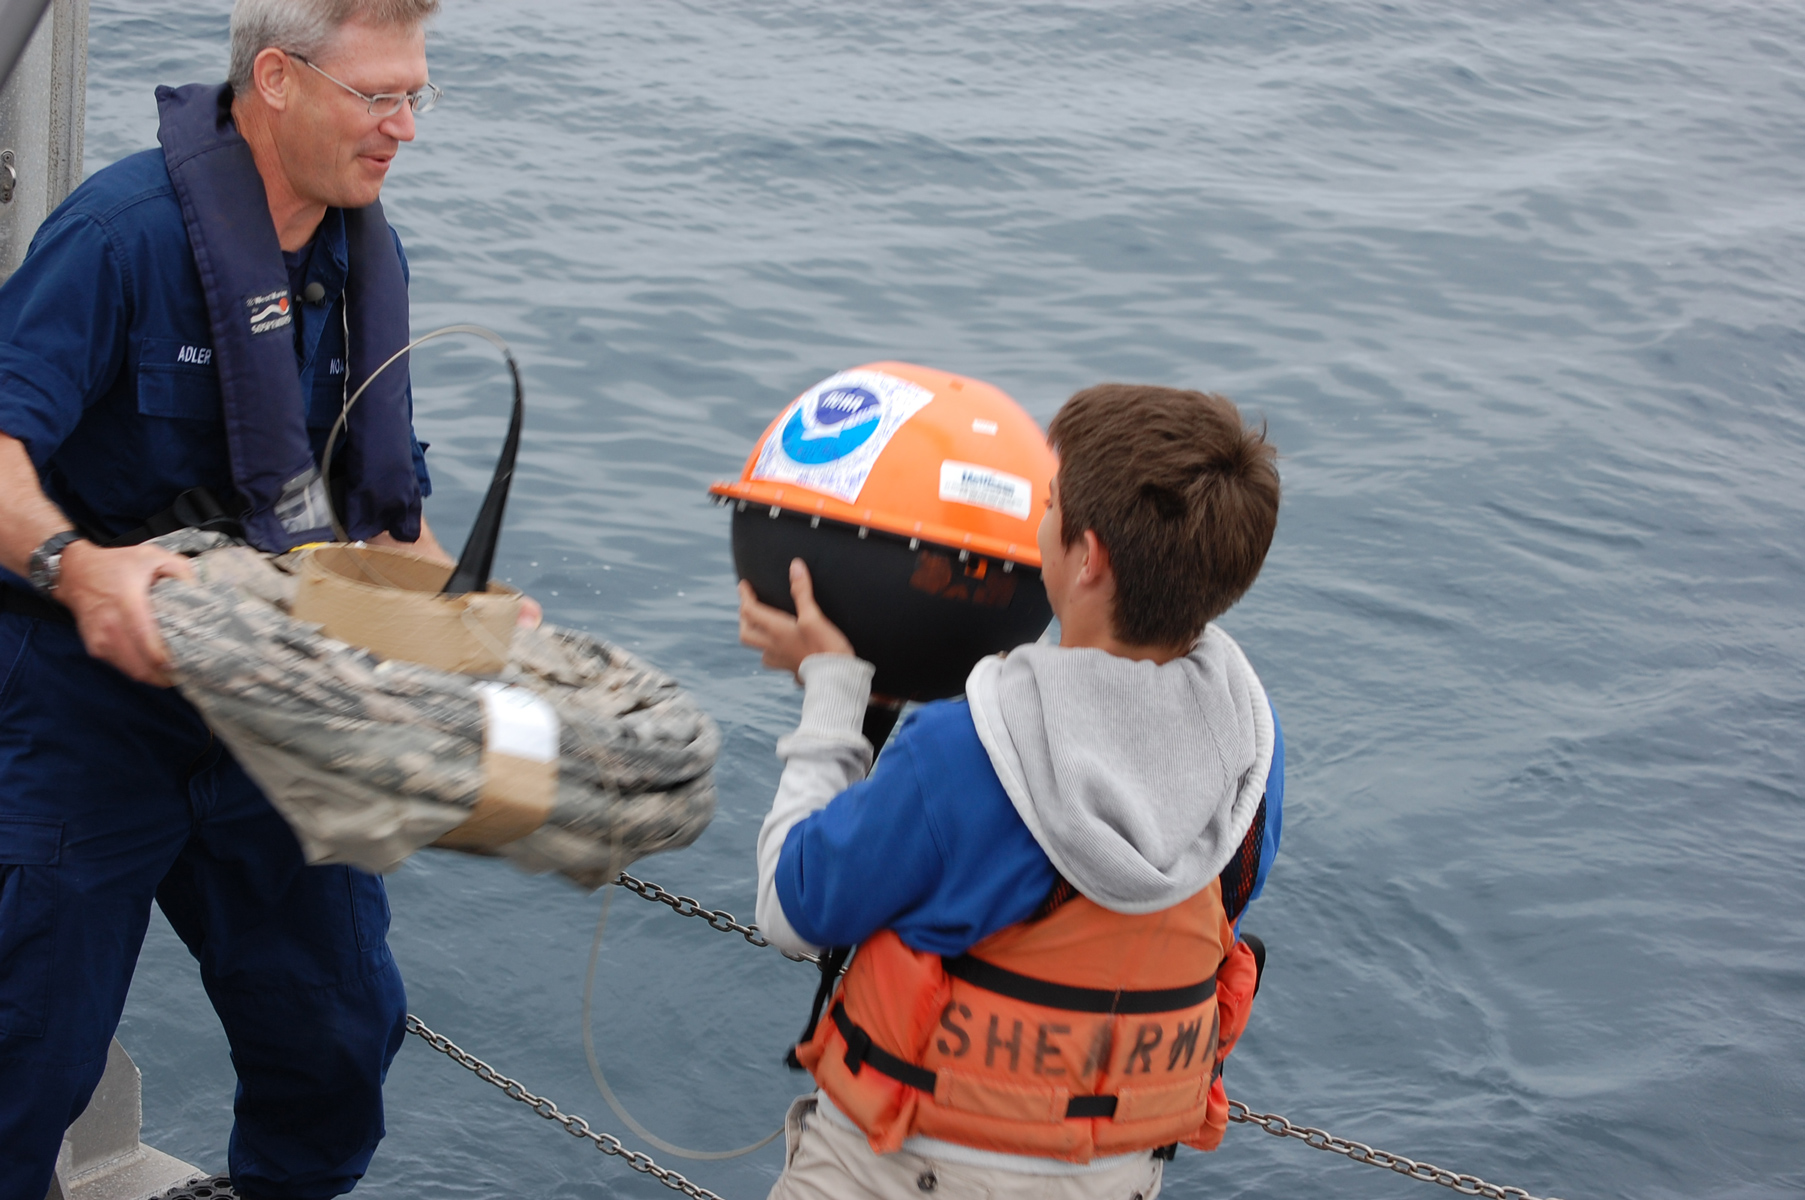 A student helps deploy one of his school's adopted drifters for NOAA's Adopt a Drifter Program. <div class='credit'><strong>Credit:</strong> A student helps deploy one of his school's adopted drifters for NOAA's Adopt a Drifter Program. </div>